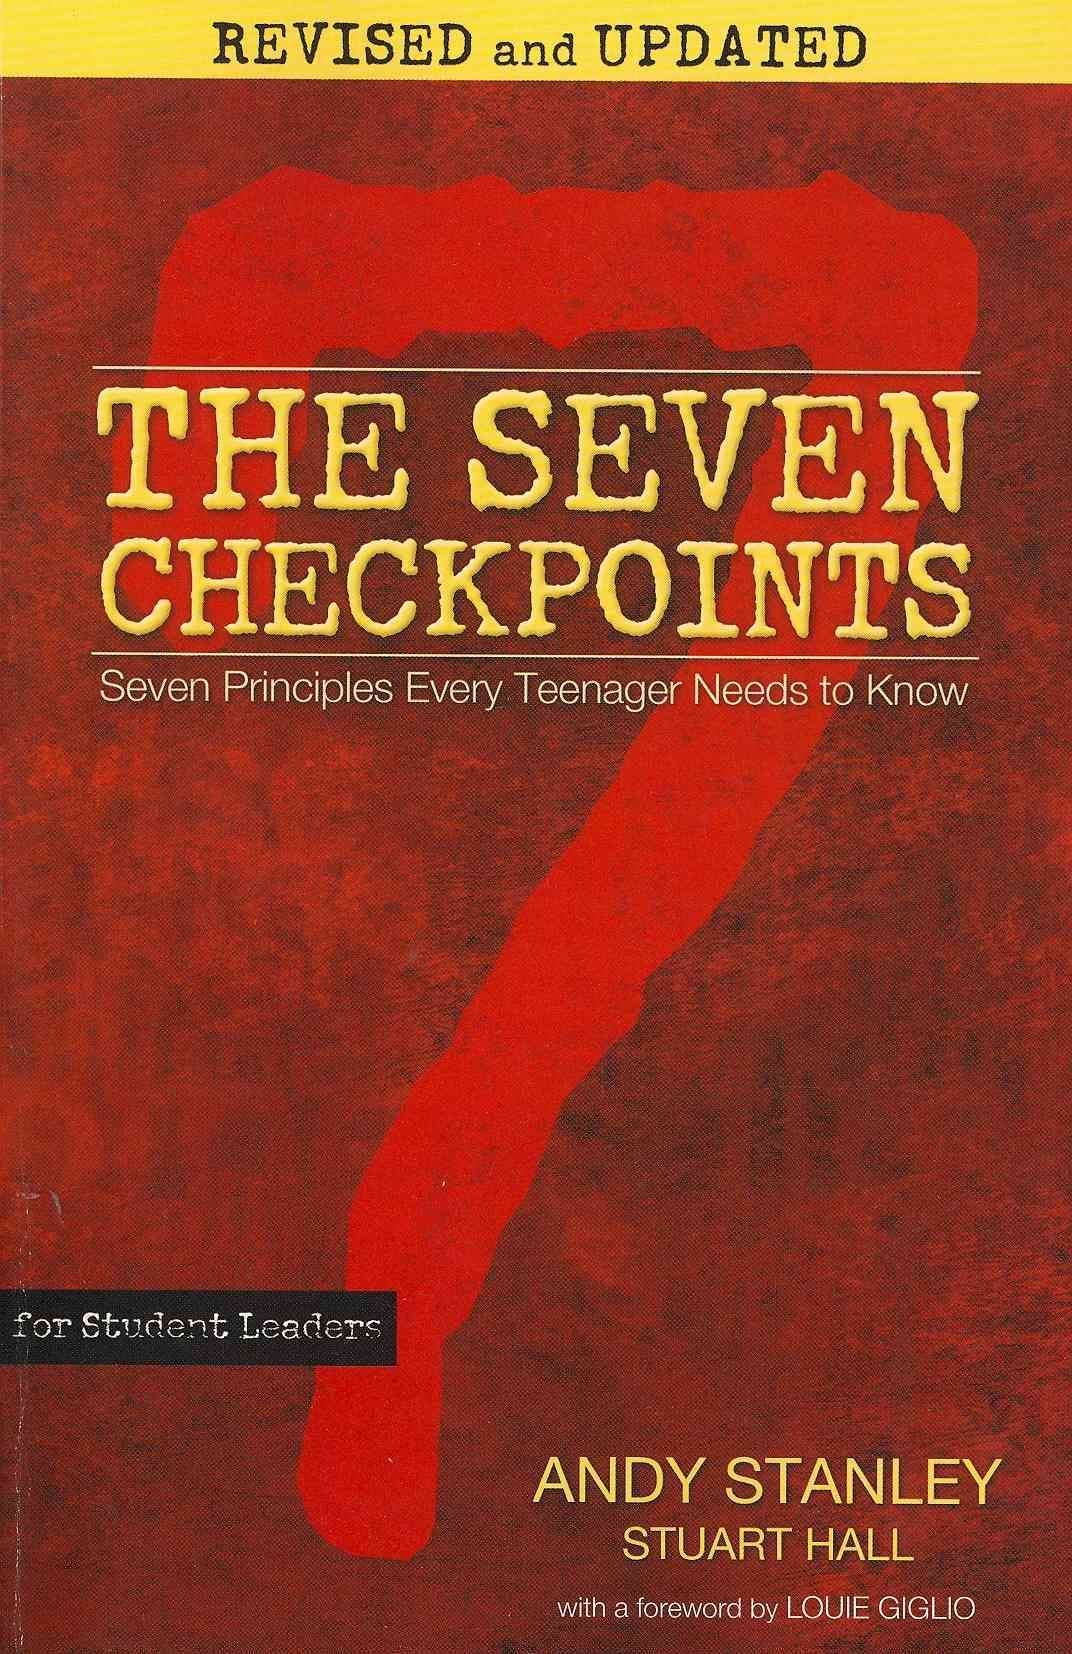 The Seven Checkpoints for Student Leaders Seven